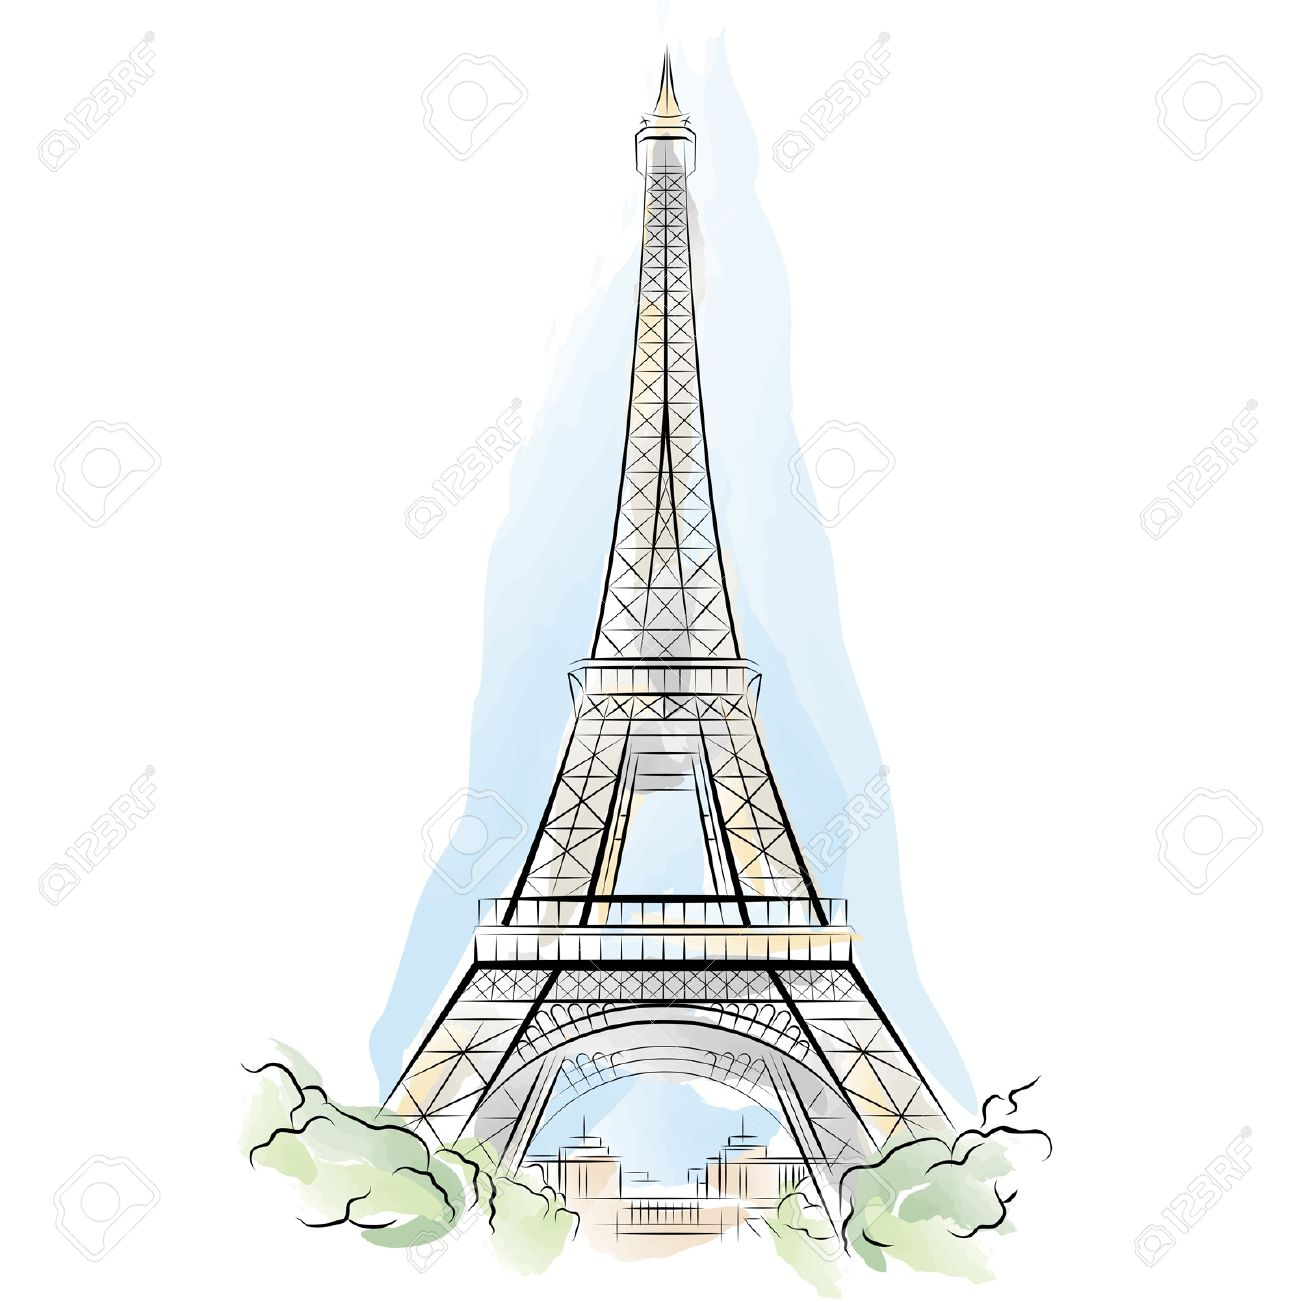 Drawing Color Eiffel Tower In Paris France Vector Illustration Royalty Free Cliparts Vectors And Stock Illustration Image 10118239